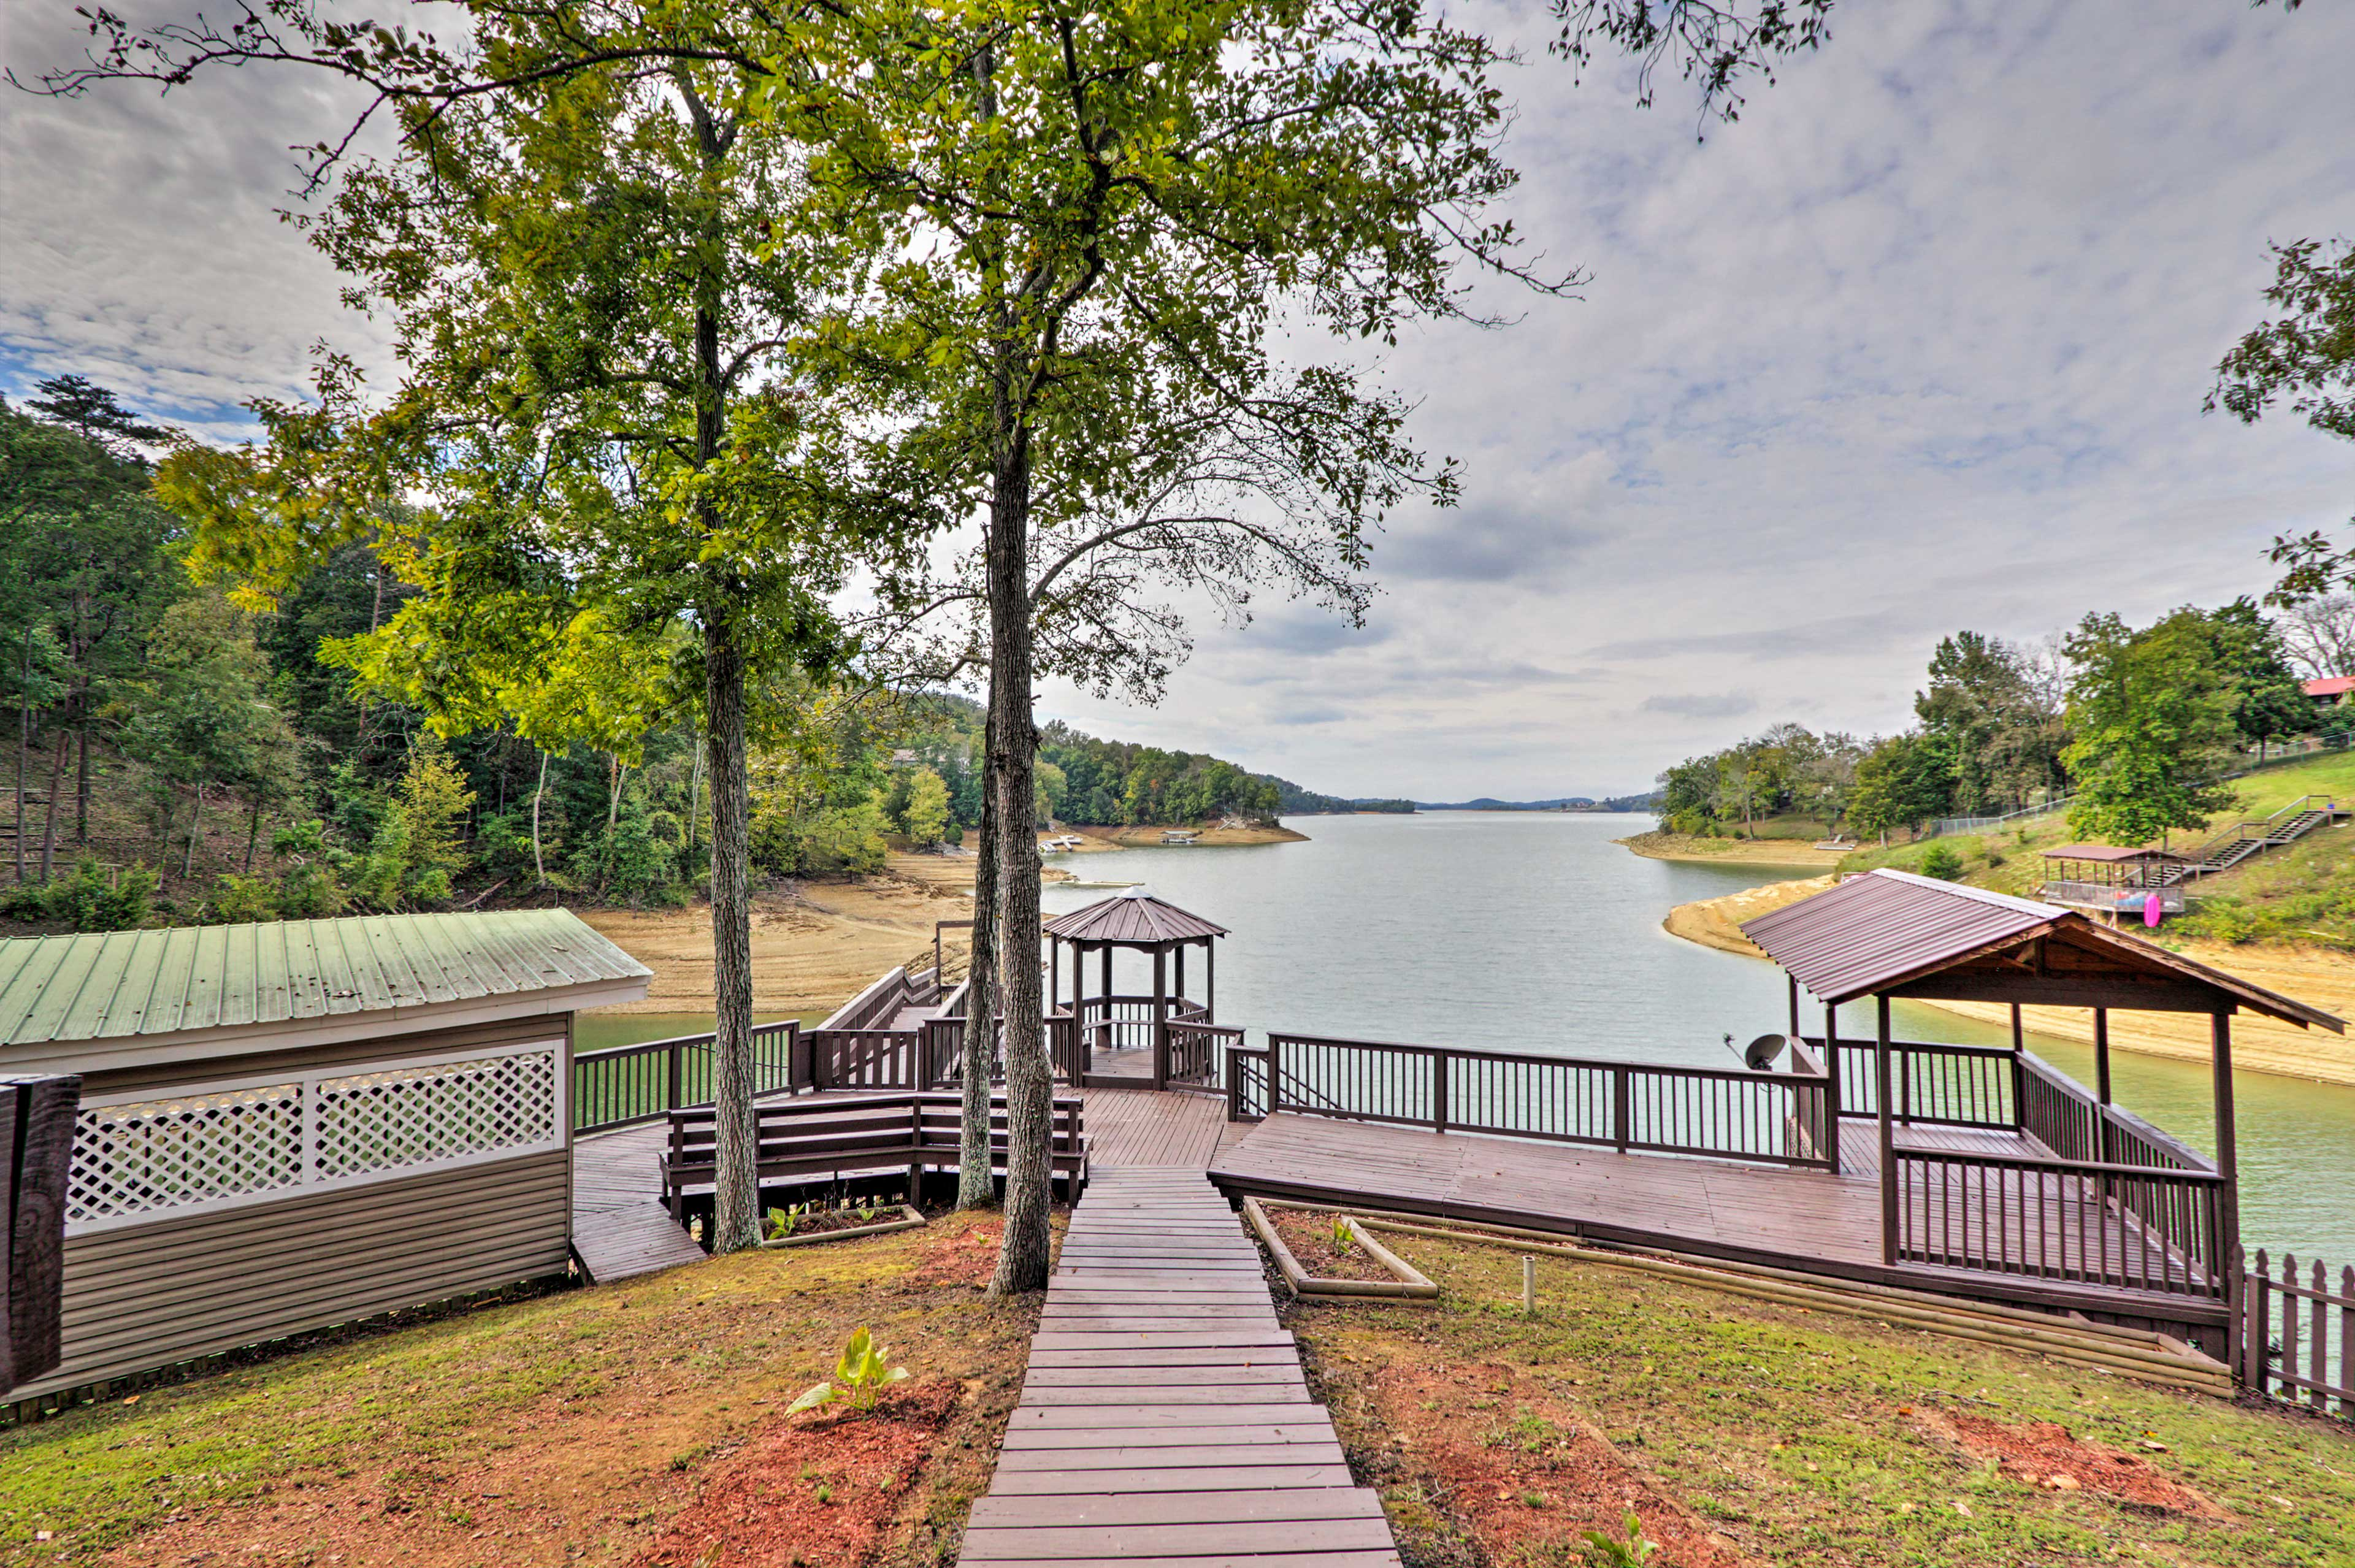 Dandridge Vacation Rental   7BR   4.5BA   4,139  Sq Ft   Stairs Required